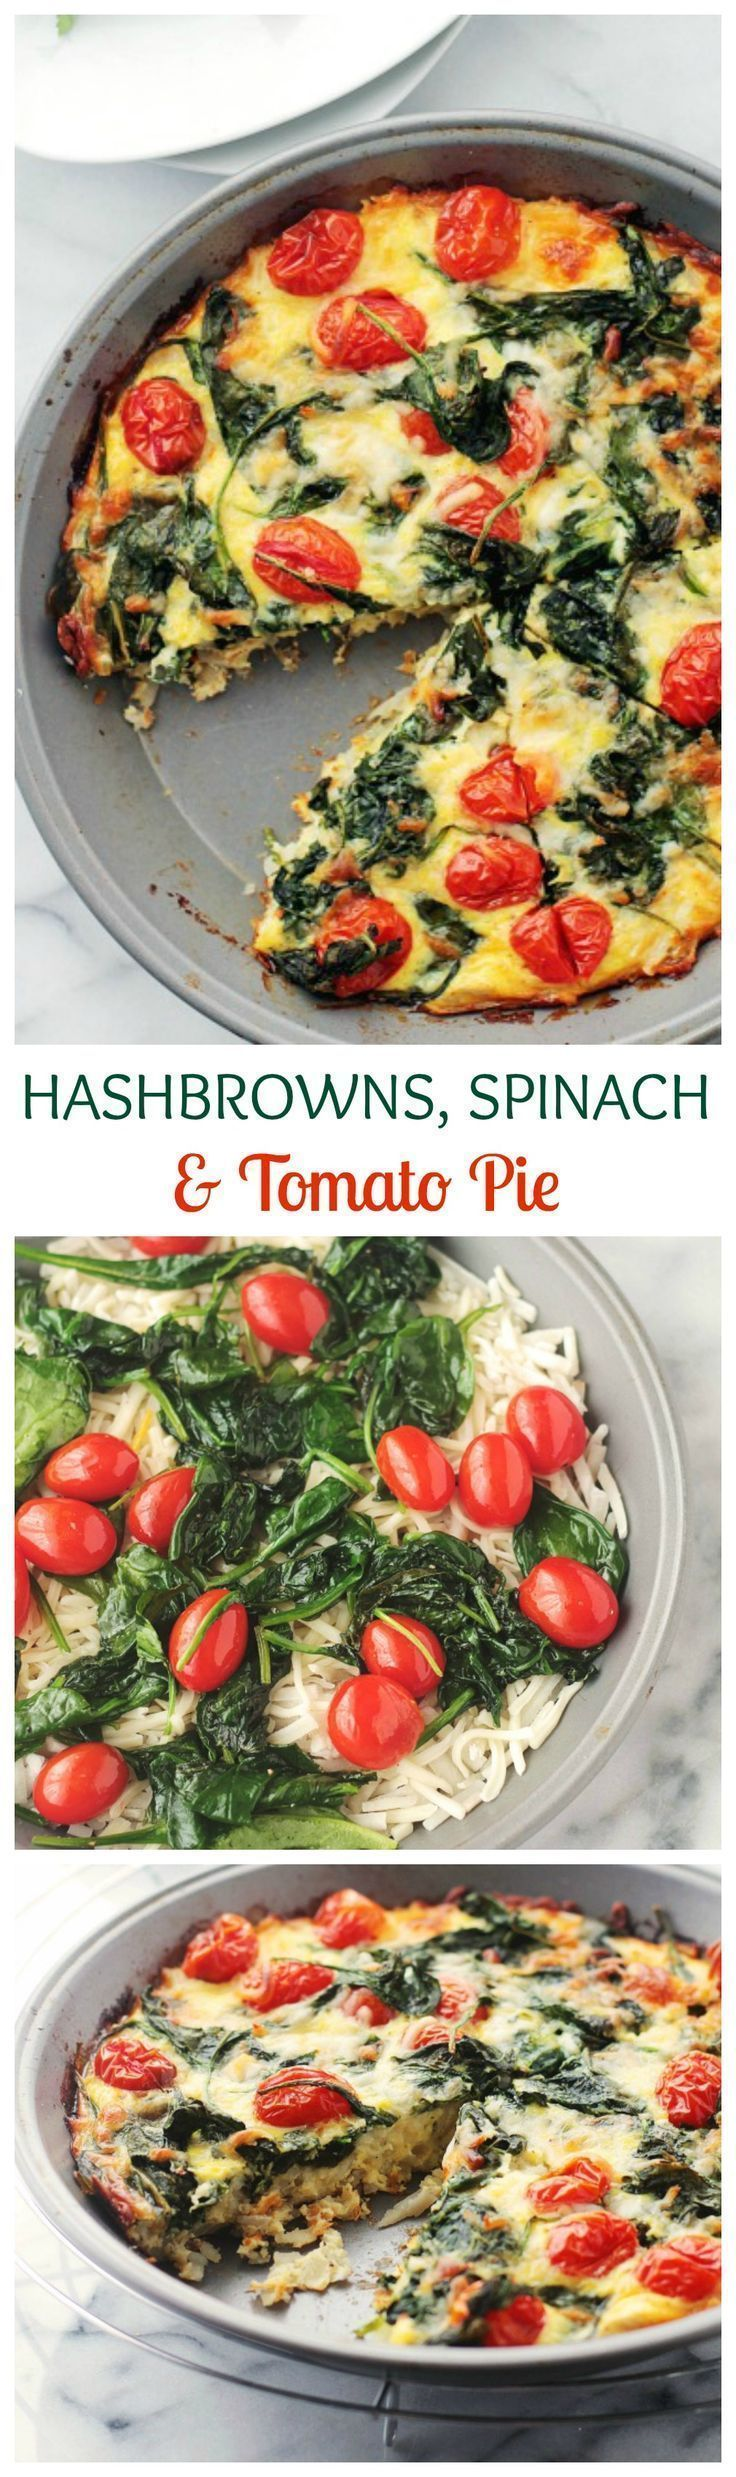 Made with a Hashbrowns-Crust, this gluten free, veggie-packed Tomato Pie is the perfect addition to your Brunch Menu!